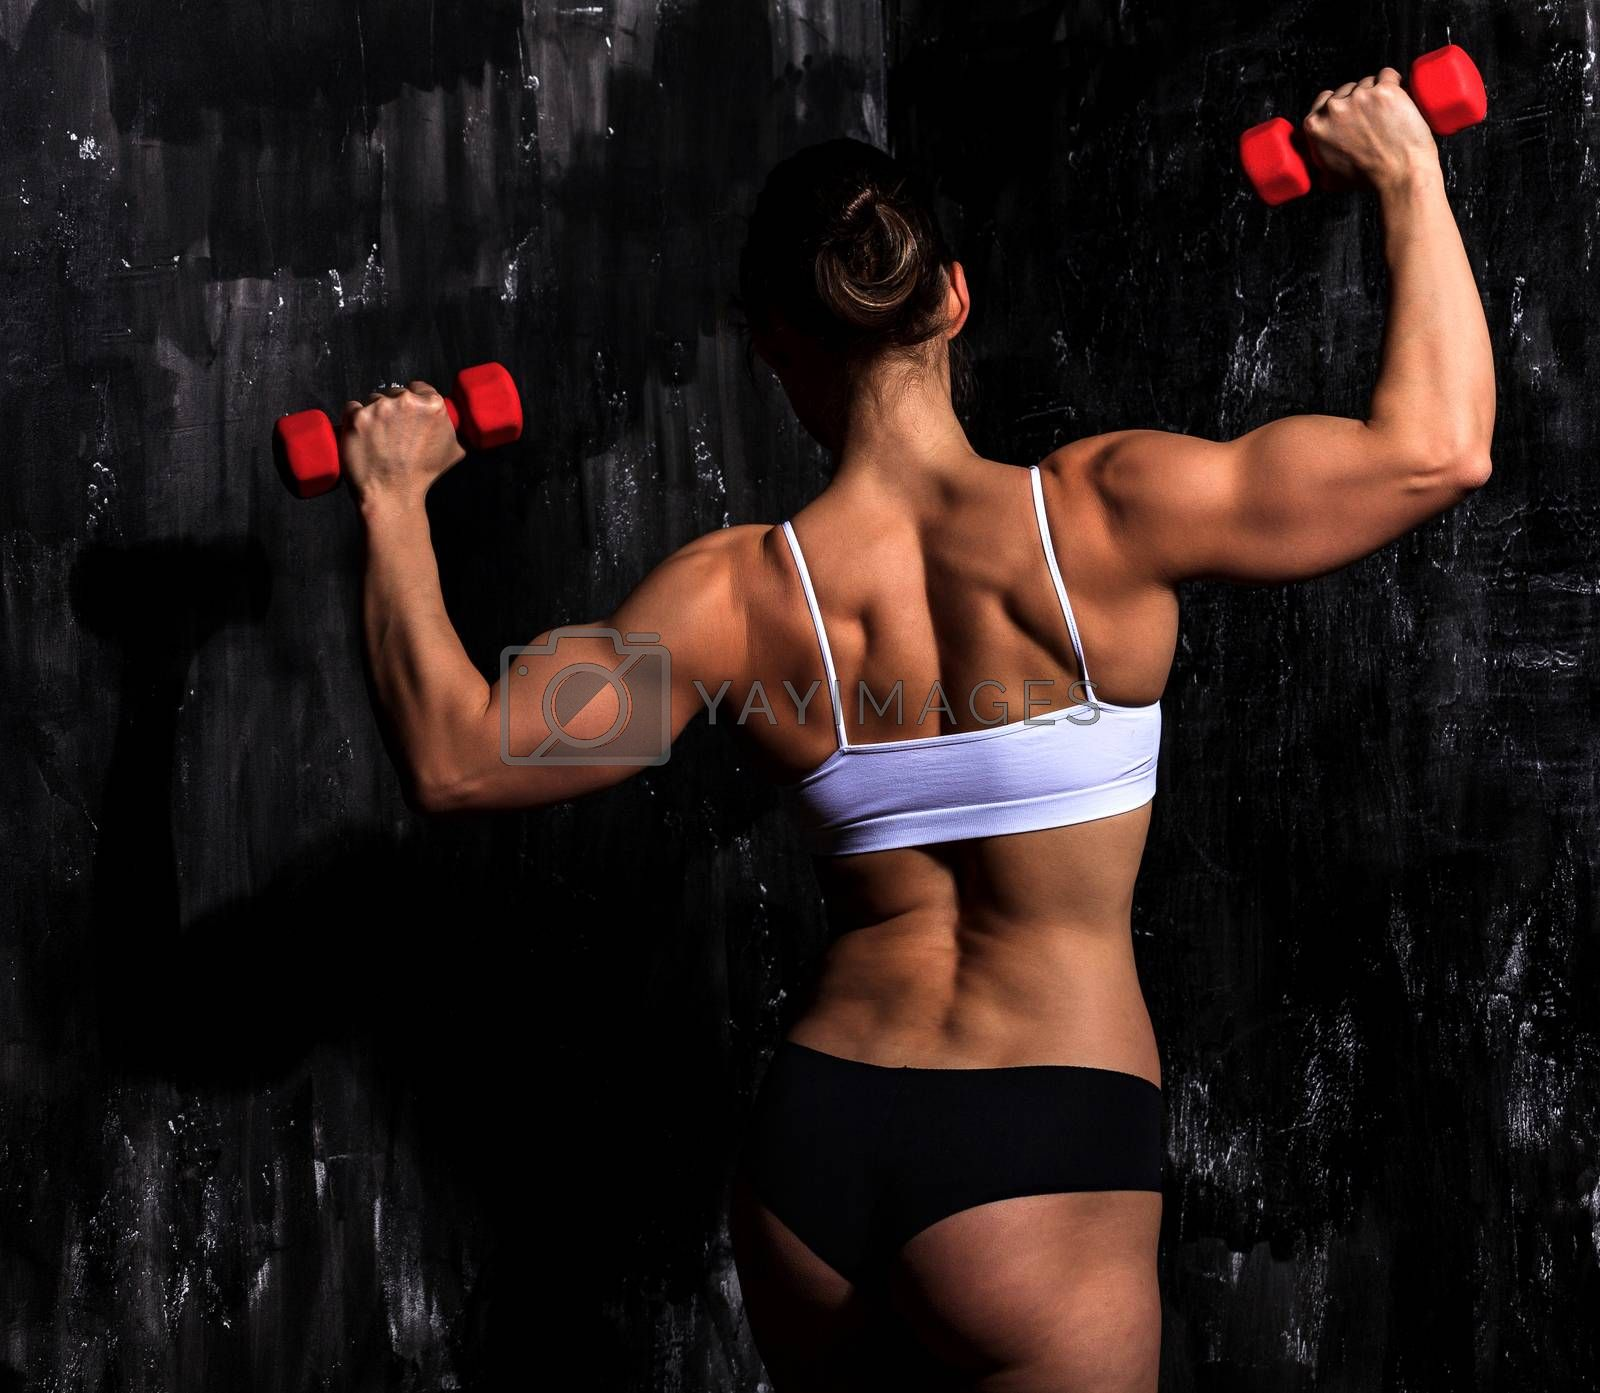 Fitness woman with red dumbbells on a dark background by Nobilior